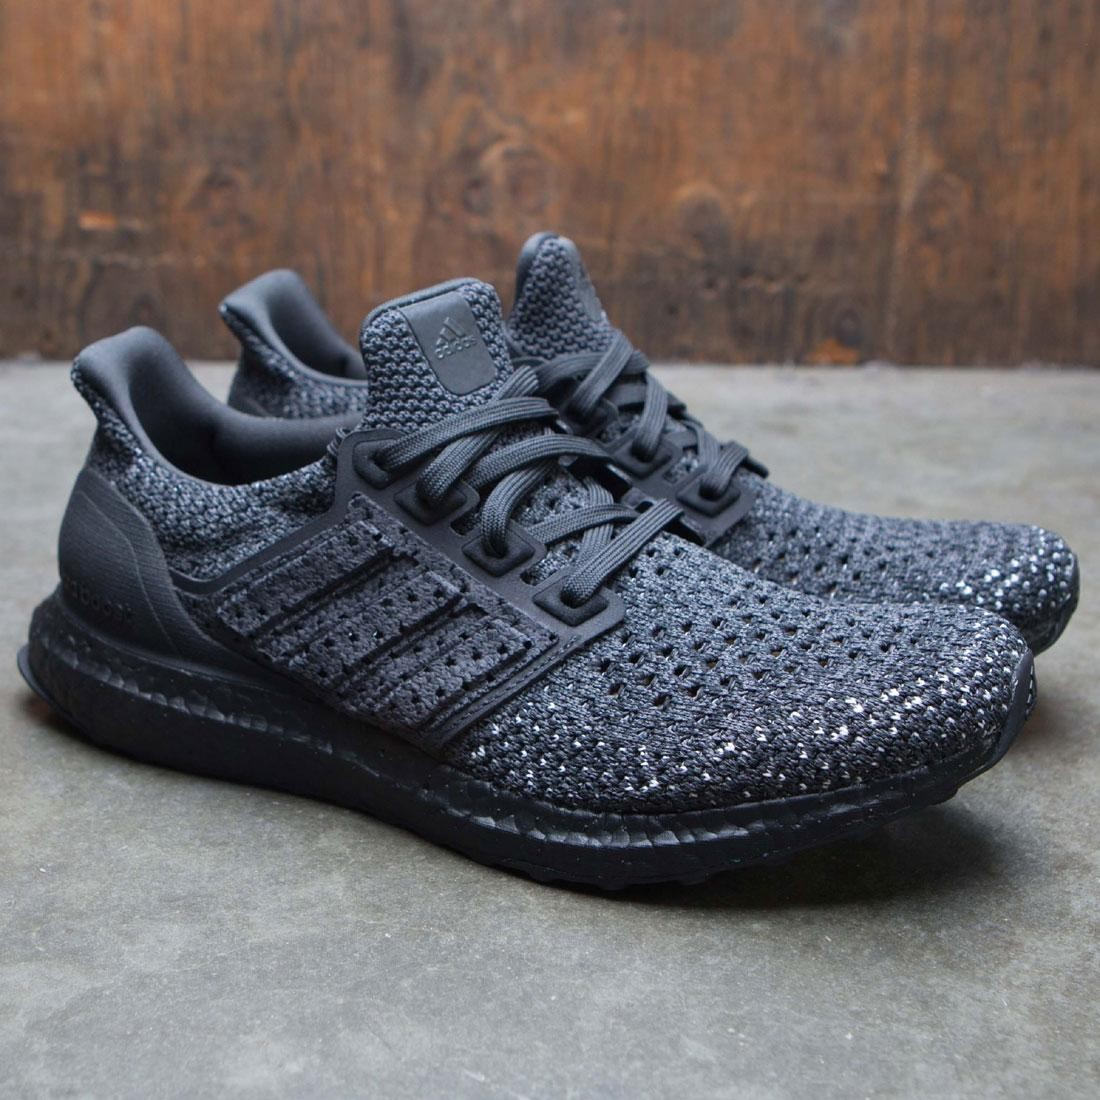 bbff9c1c116b55 Adidas Men UltraBOOST Clima (black   carbon   orchid tint)